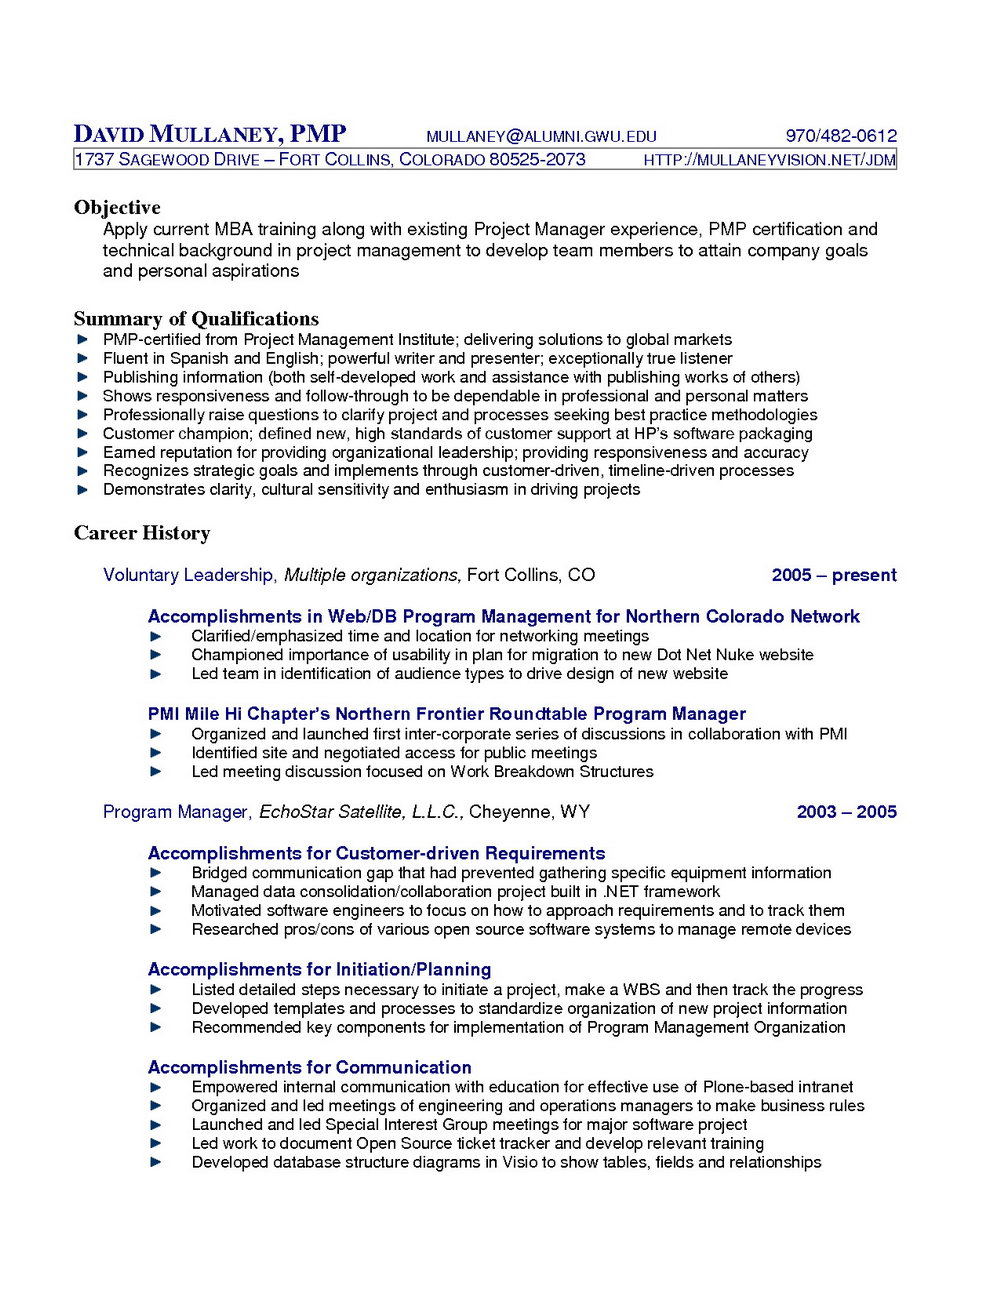 Sample Cv For Project Management Officer